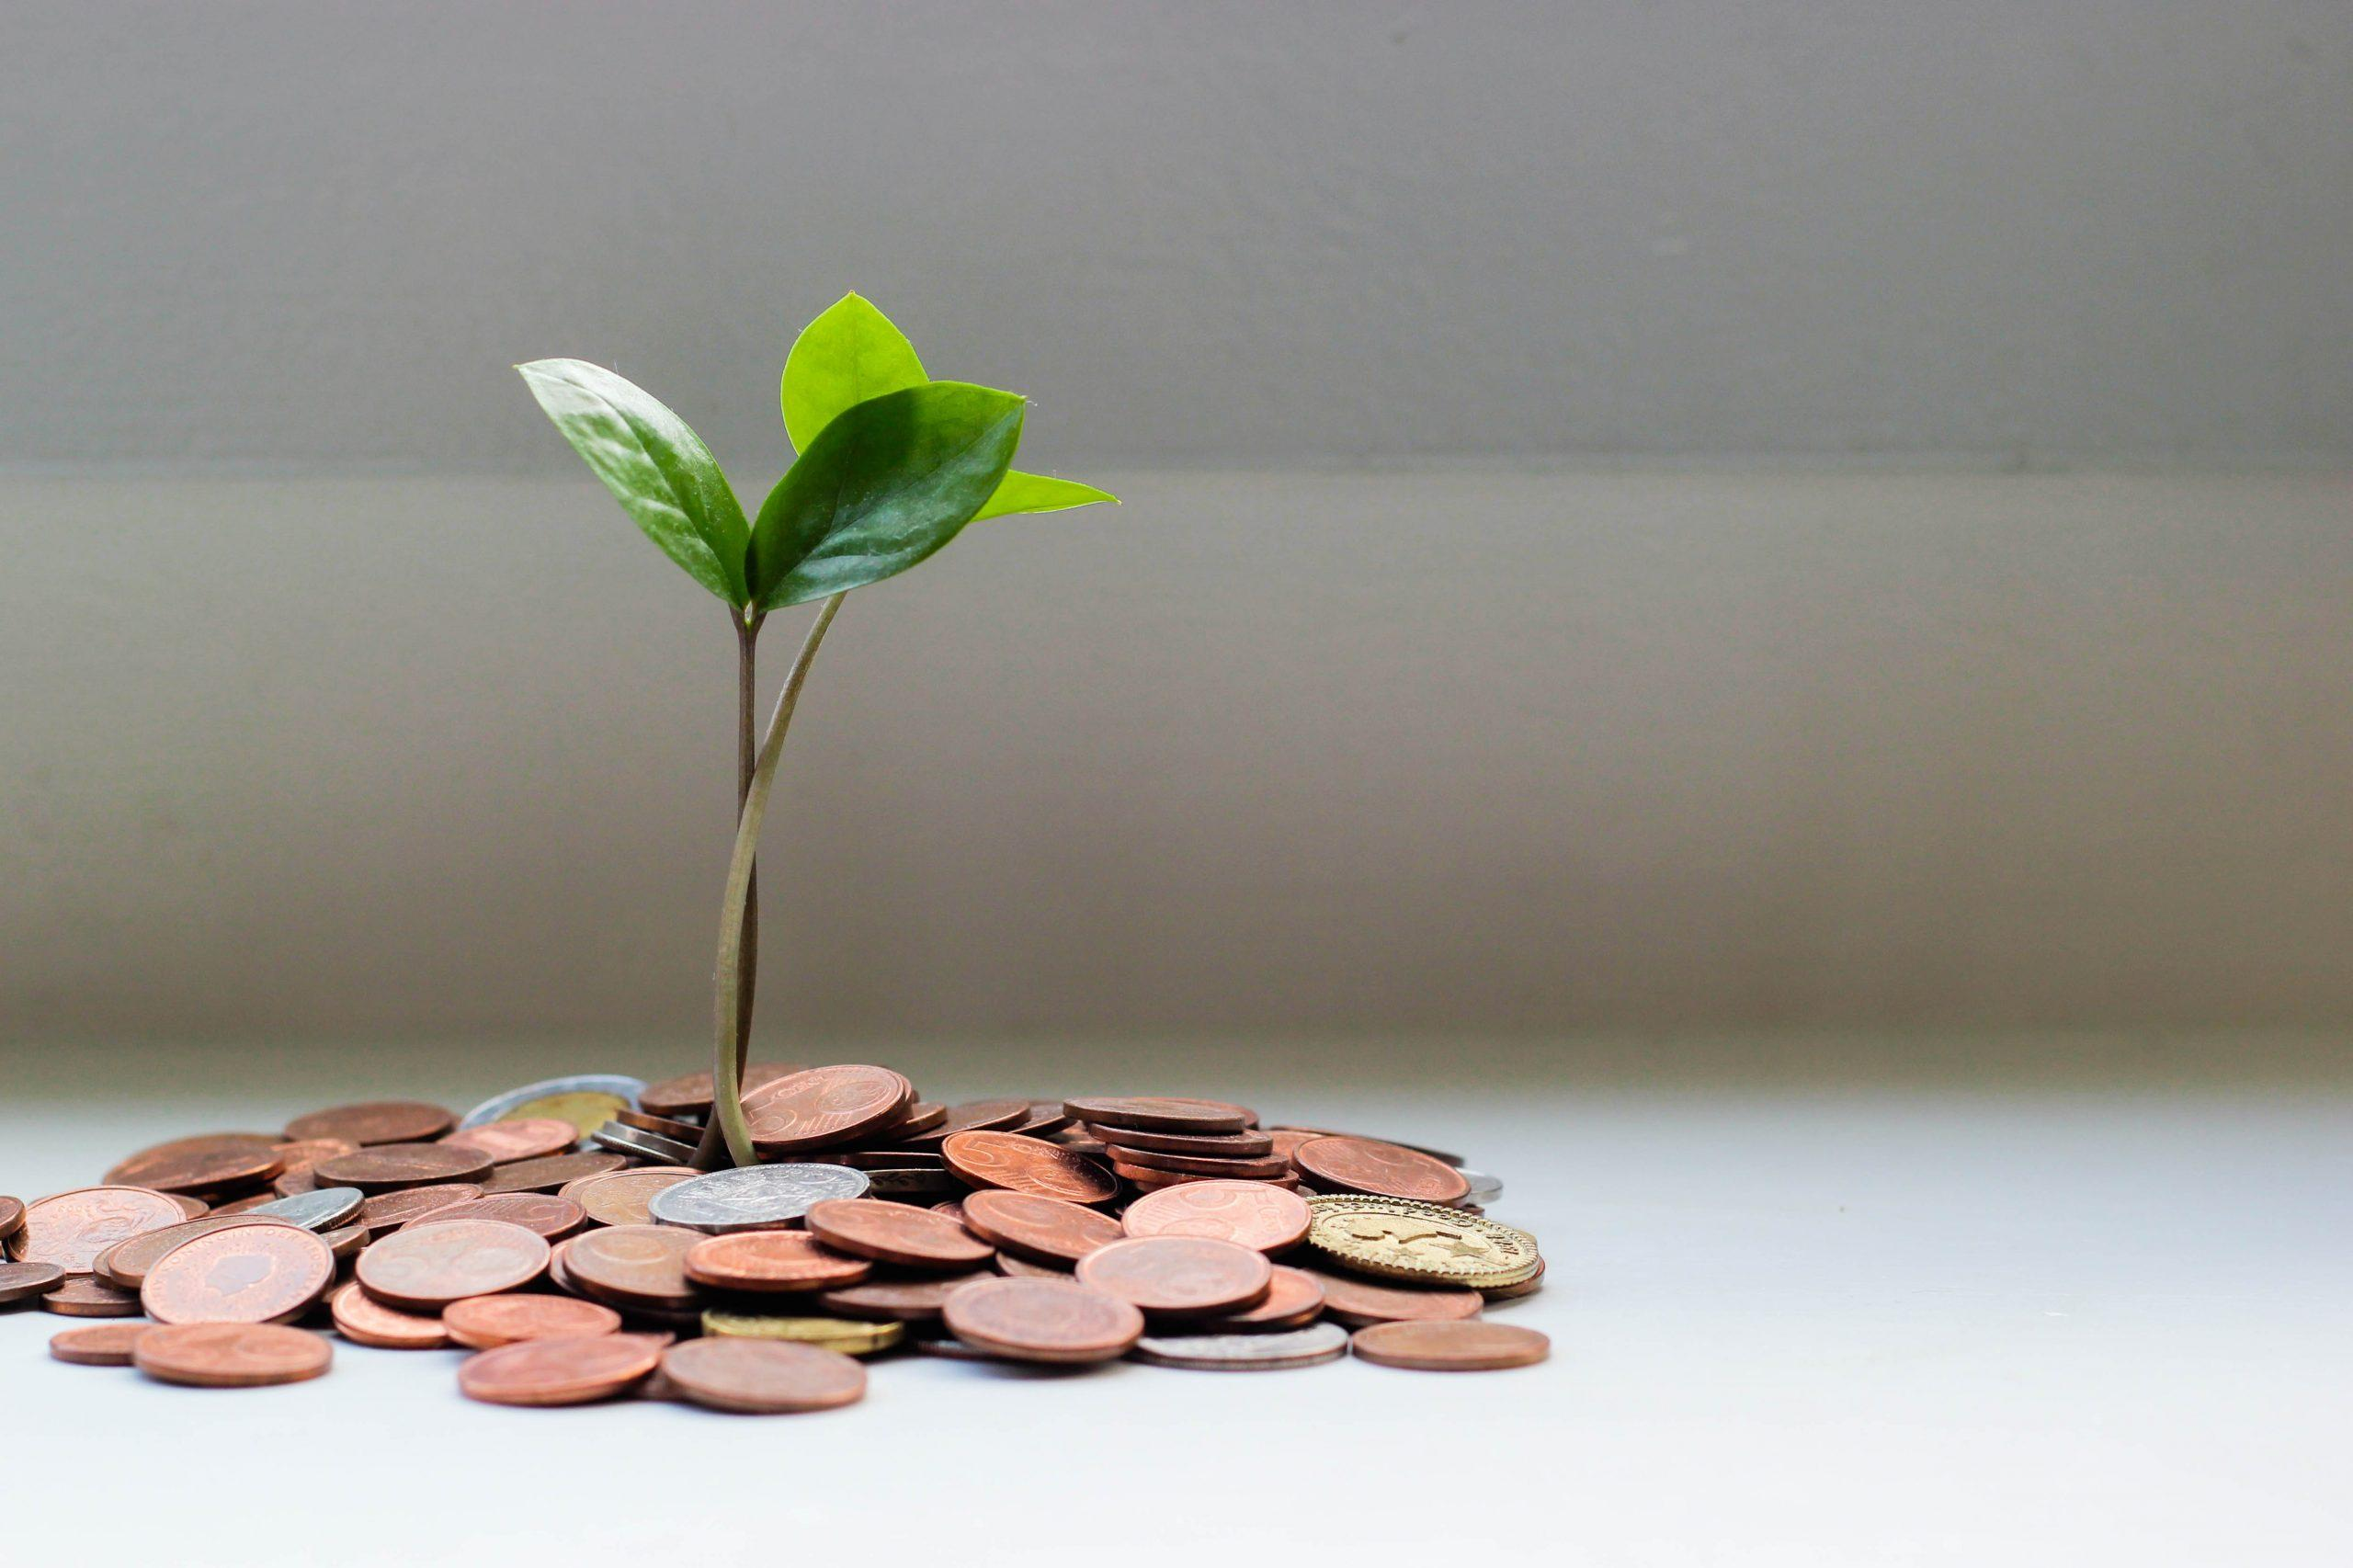 Small tree shoot growing surrounded by coins